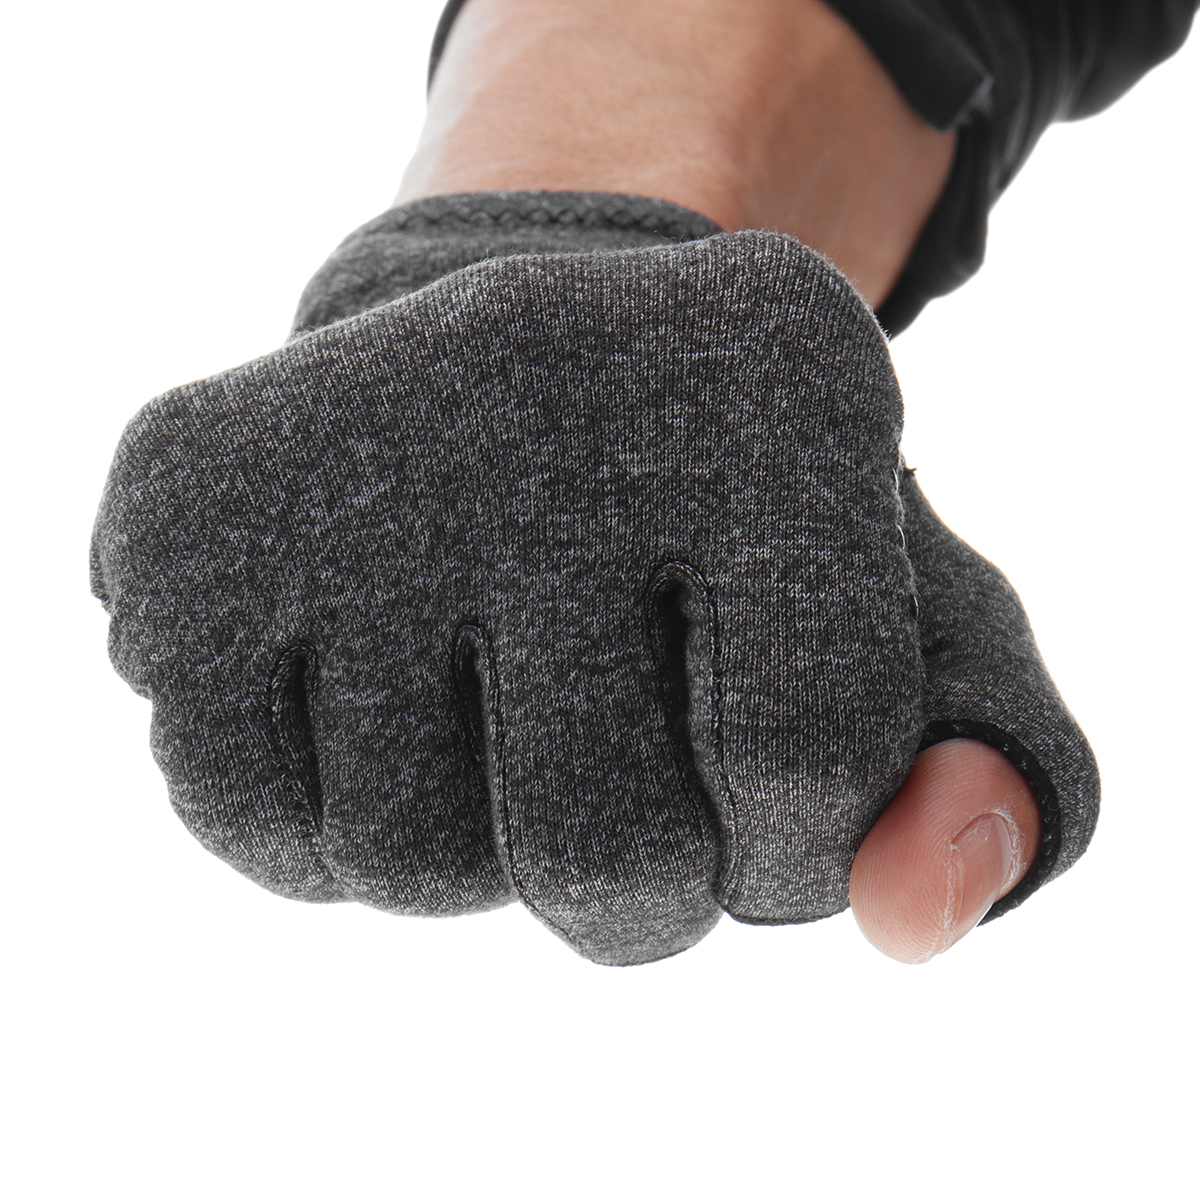 1 Pair Anti Arthritis Gloves Ease Pain Relief Gloves Hand Support Outdoor Fitness Half Finger Gloves